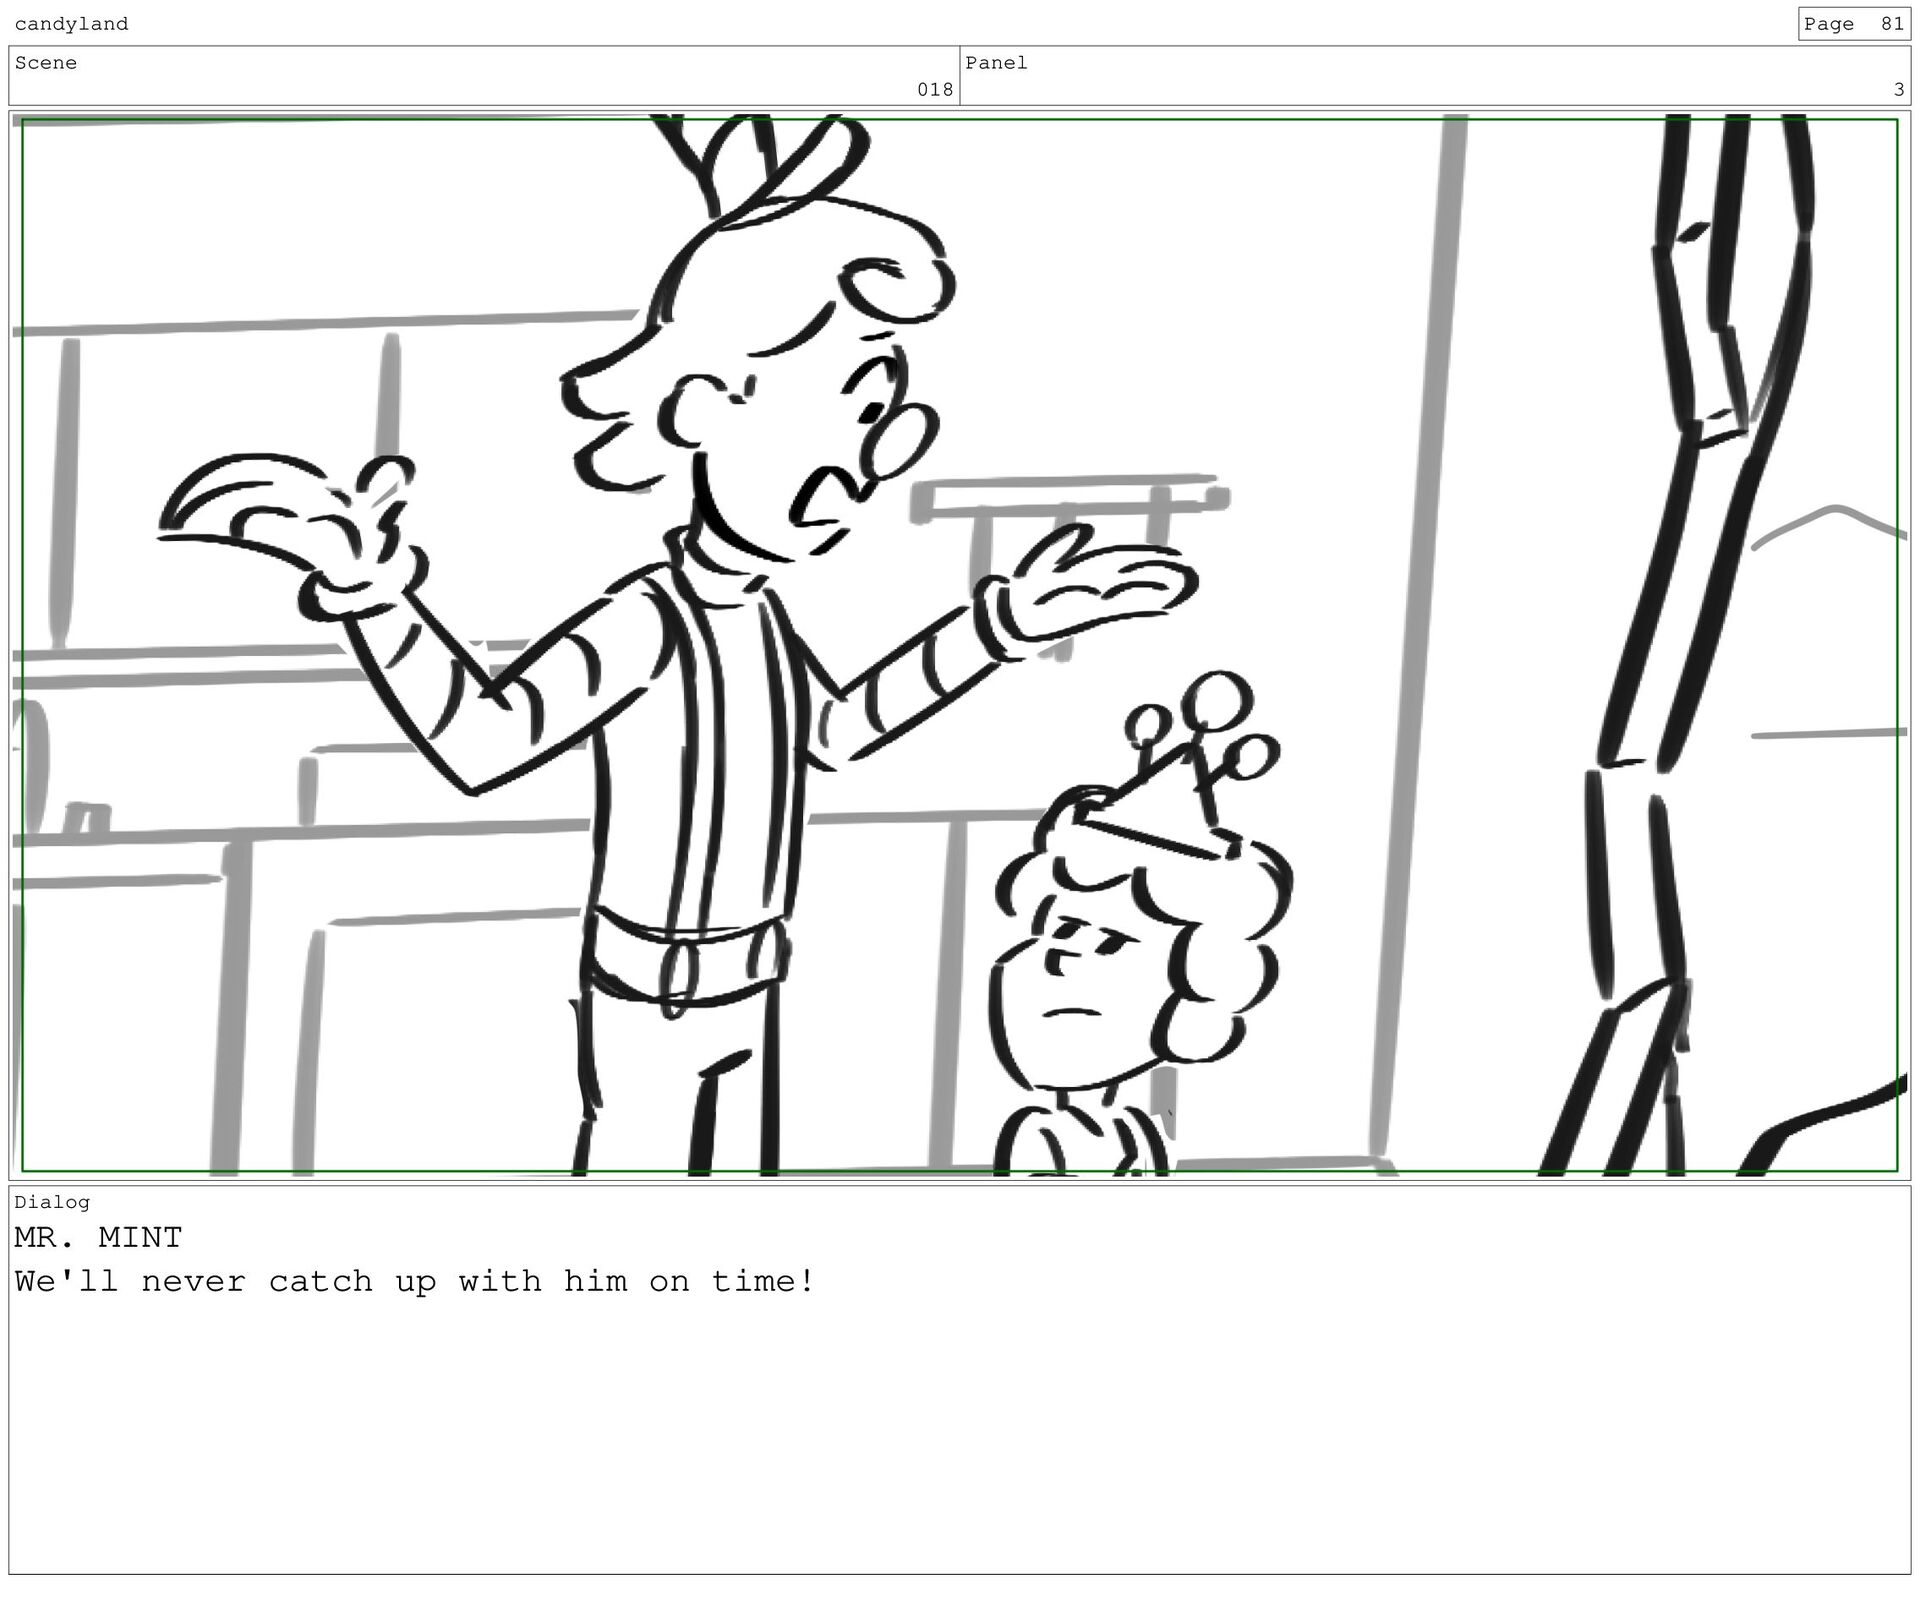 Scene 21 Panel 2 candyland Page 81/174